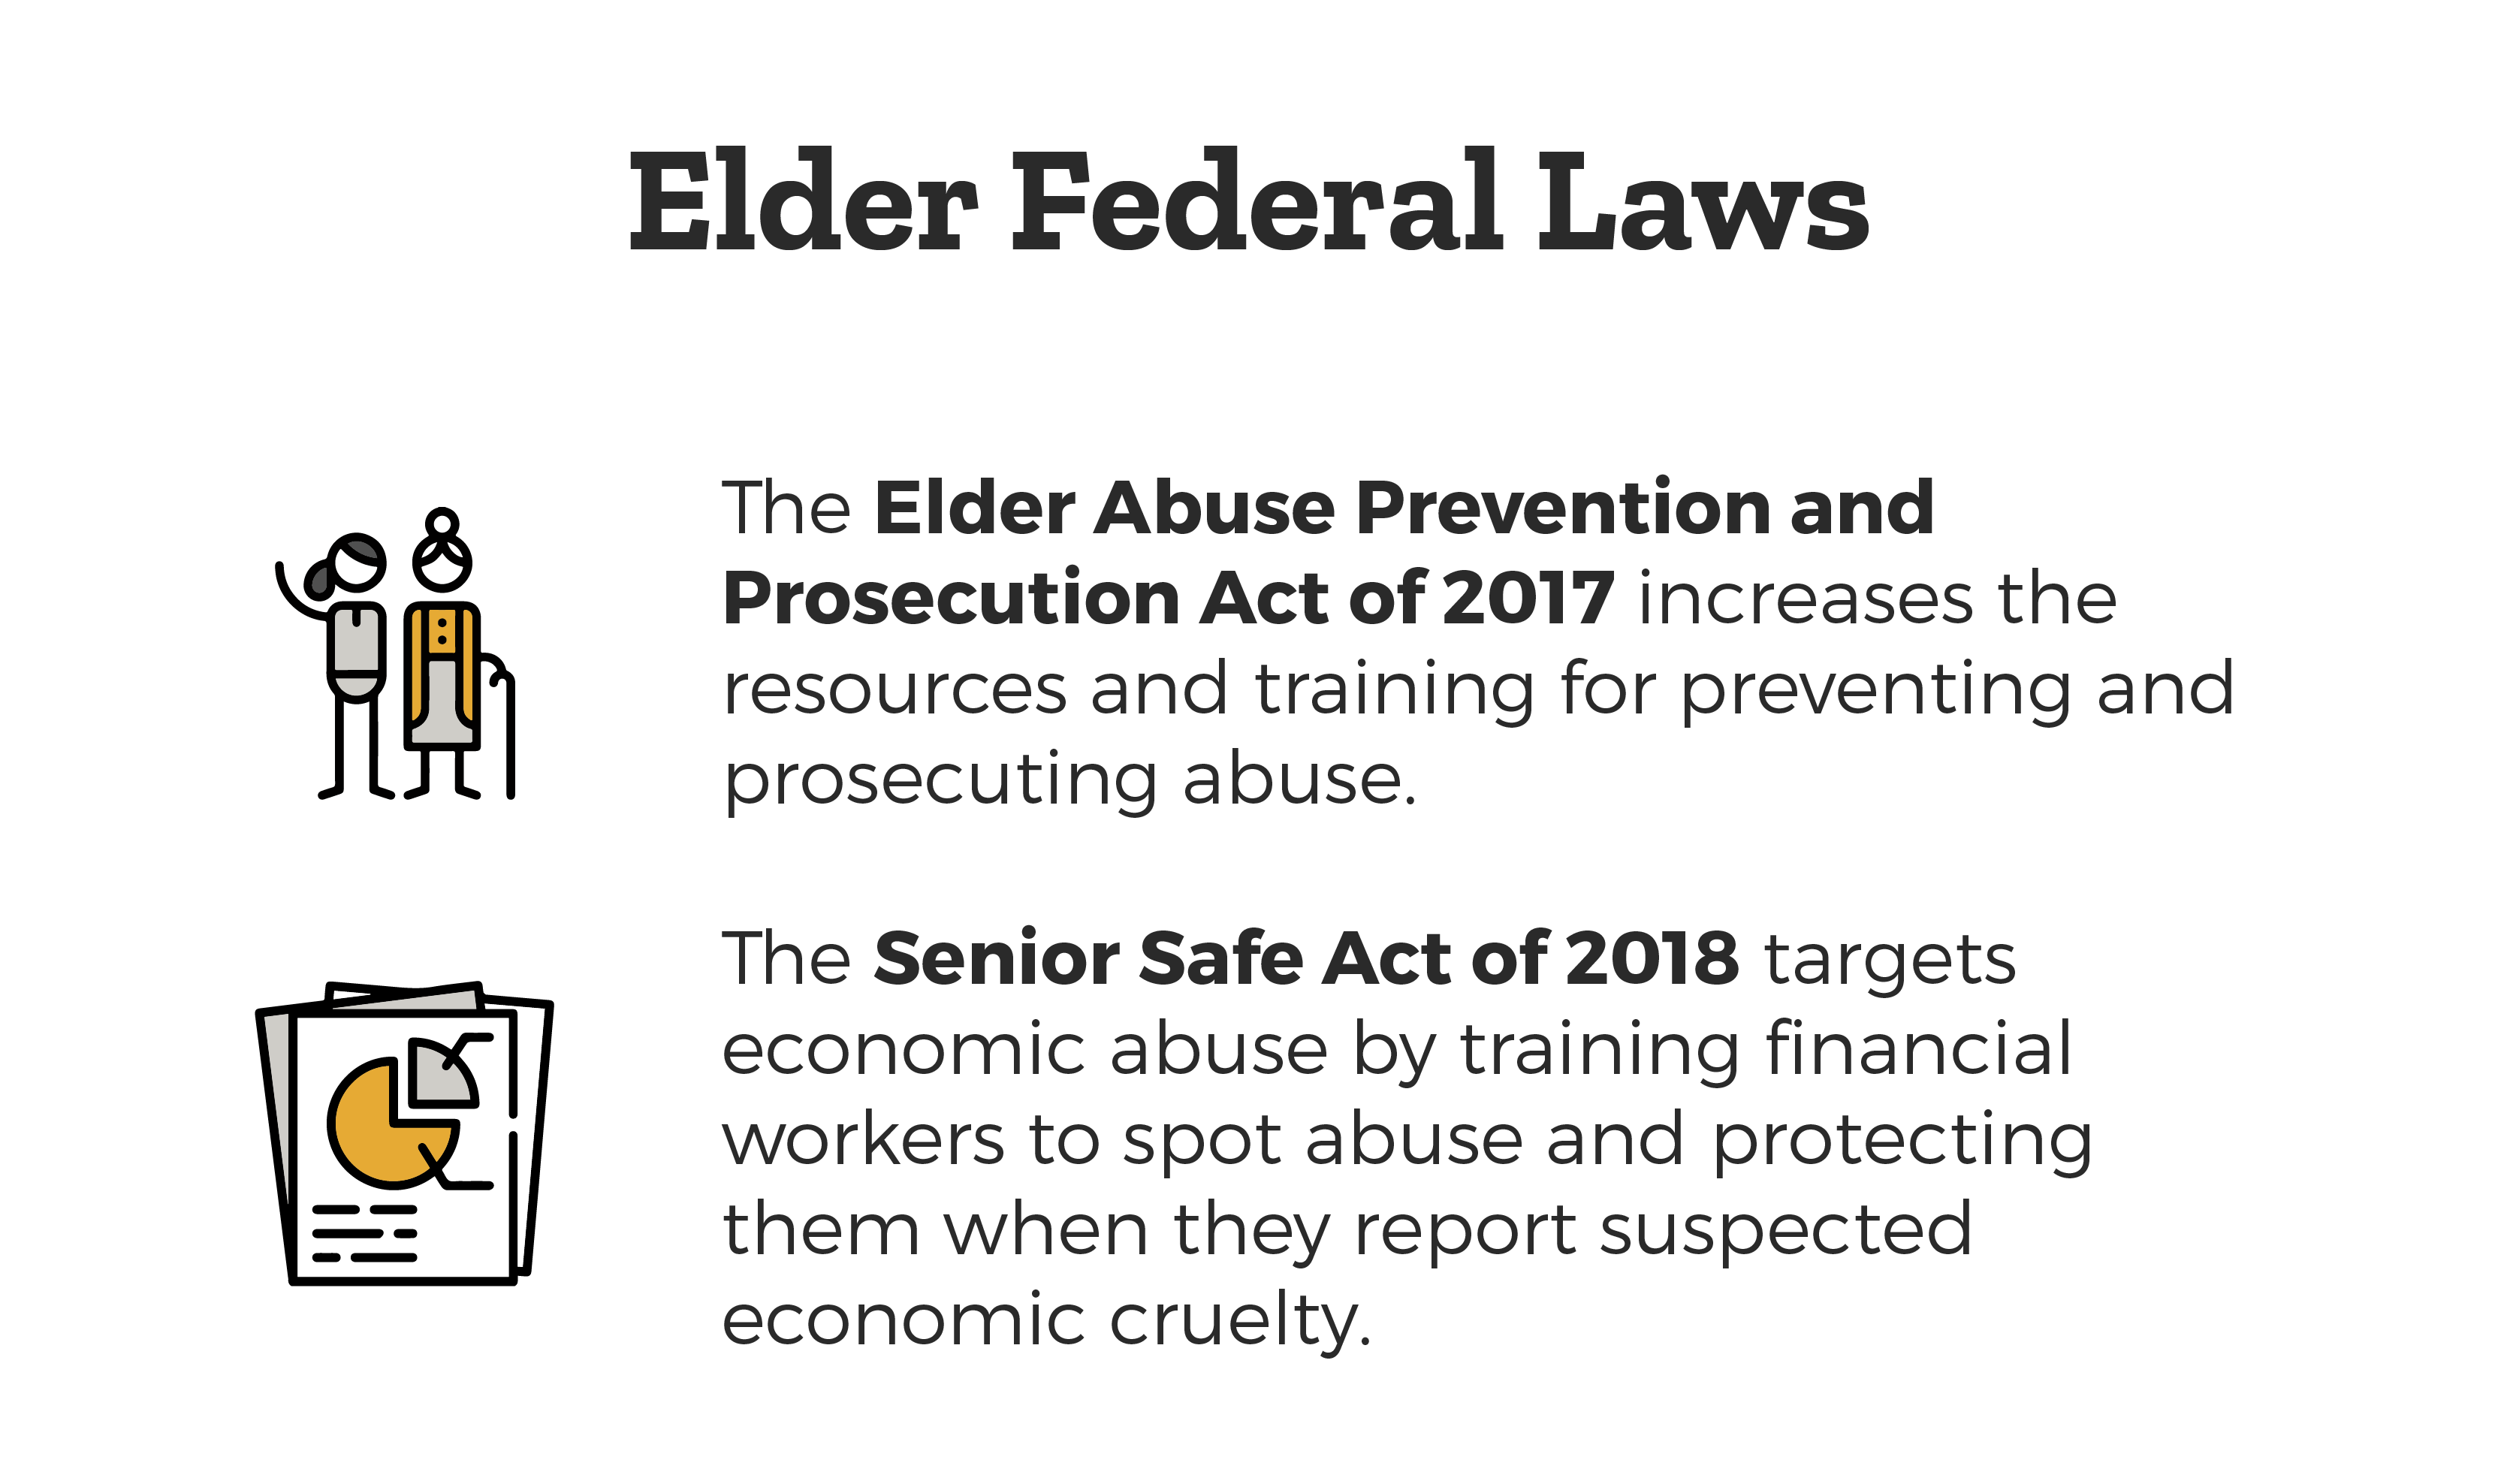 Elder Federal Laws - Elder Abuse Prevention and Prosecution Act of 2017  which increases the resources and training for preventing and prosecuting abuse and the Senior Safe Act of 2018 targets economic abuse by training financial workers to spot abuse and protecting them when they report suspected economic cruelty.